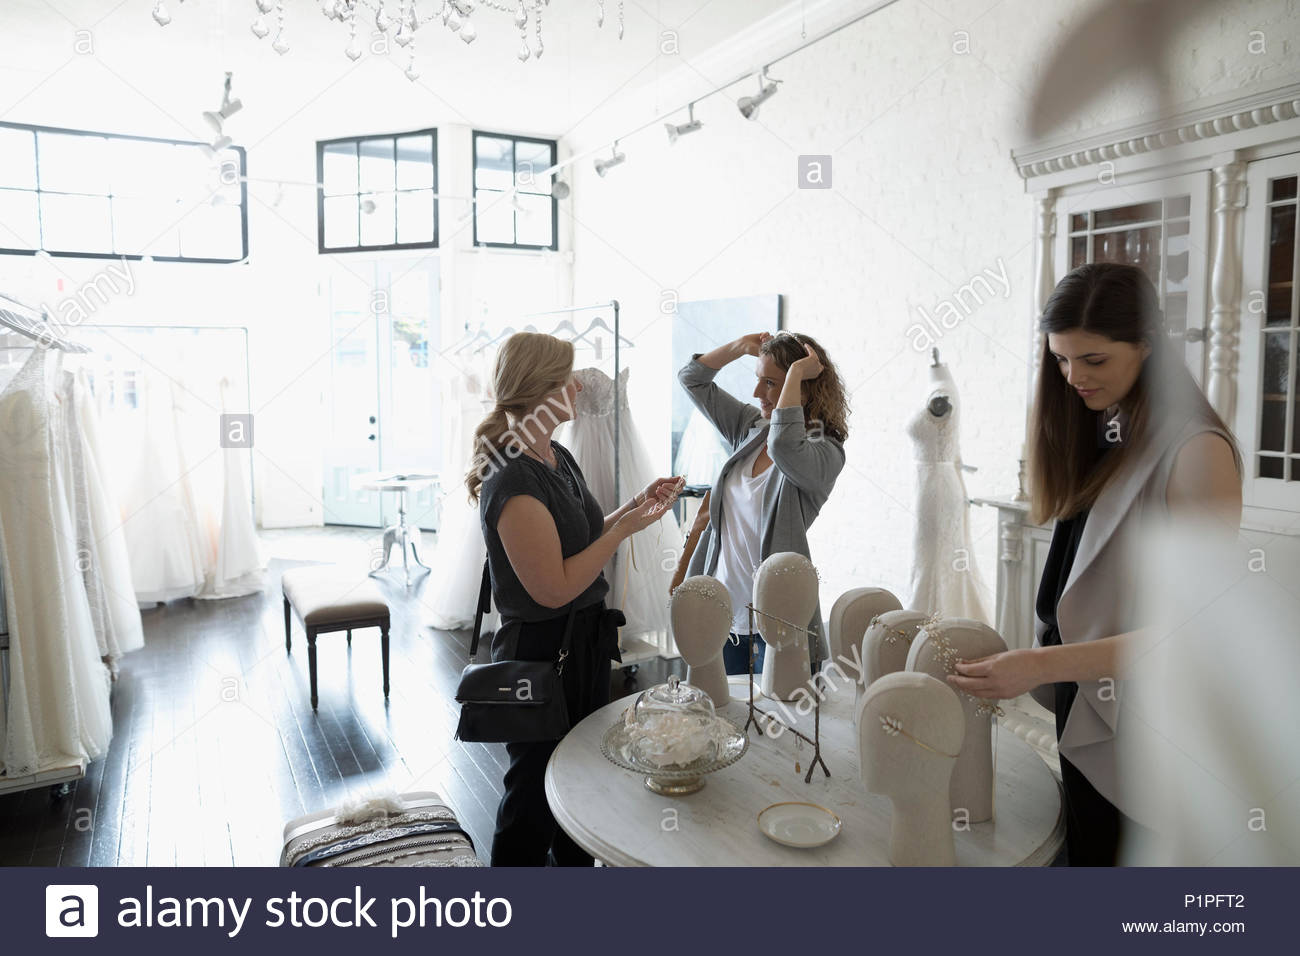 Bride trying on headbands at bridal boutique - Stock Image